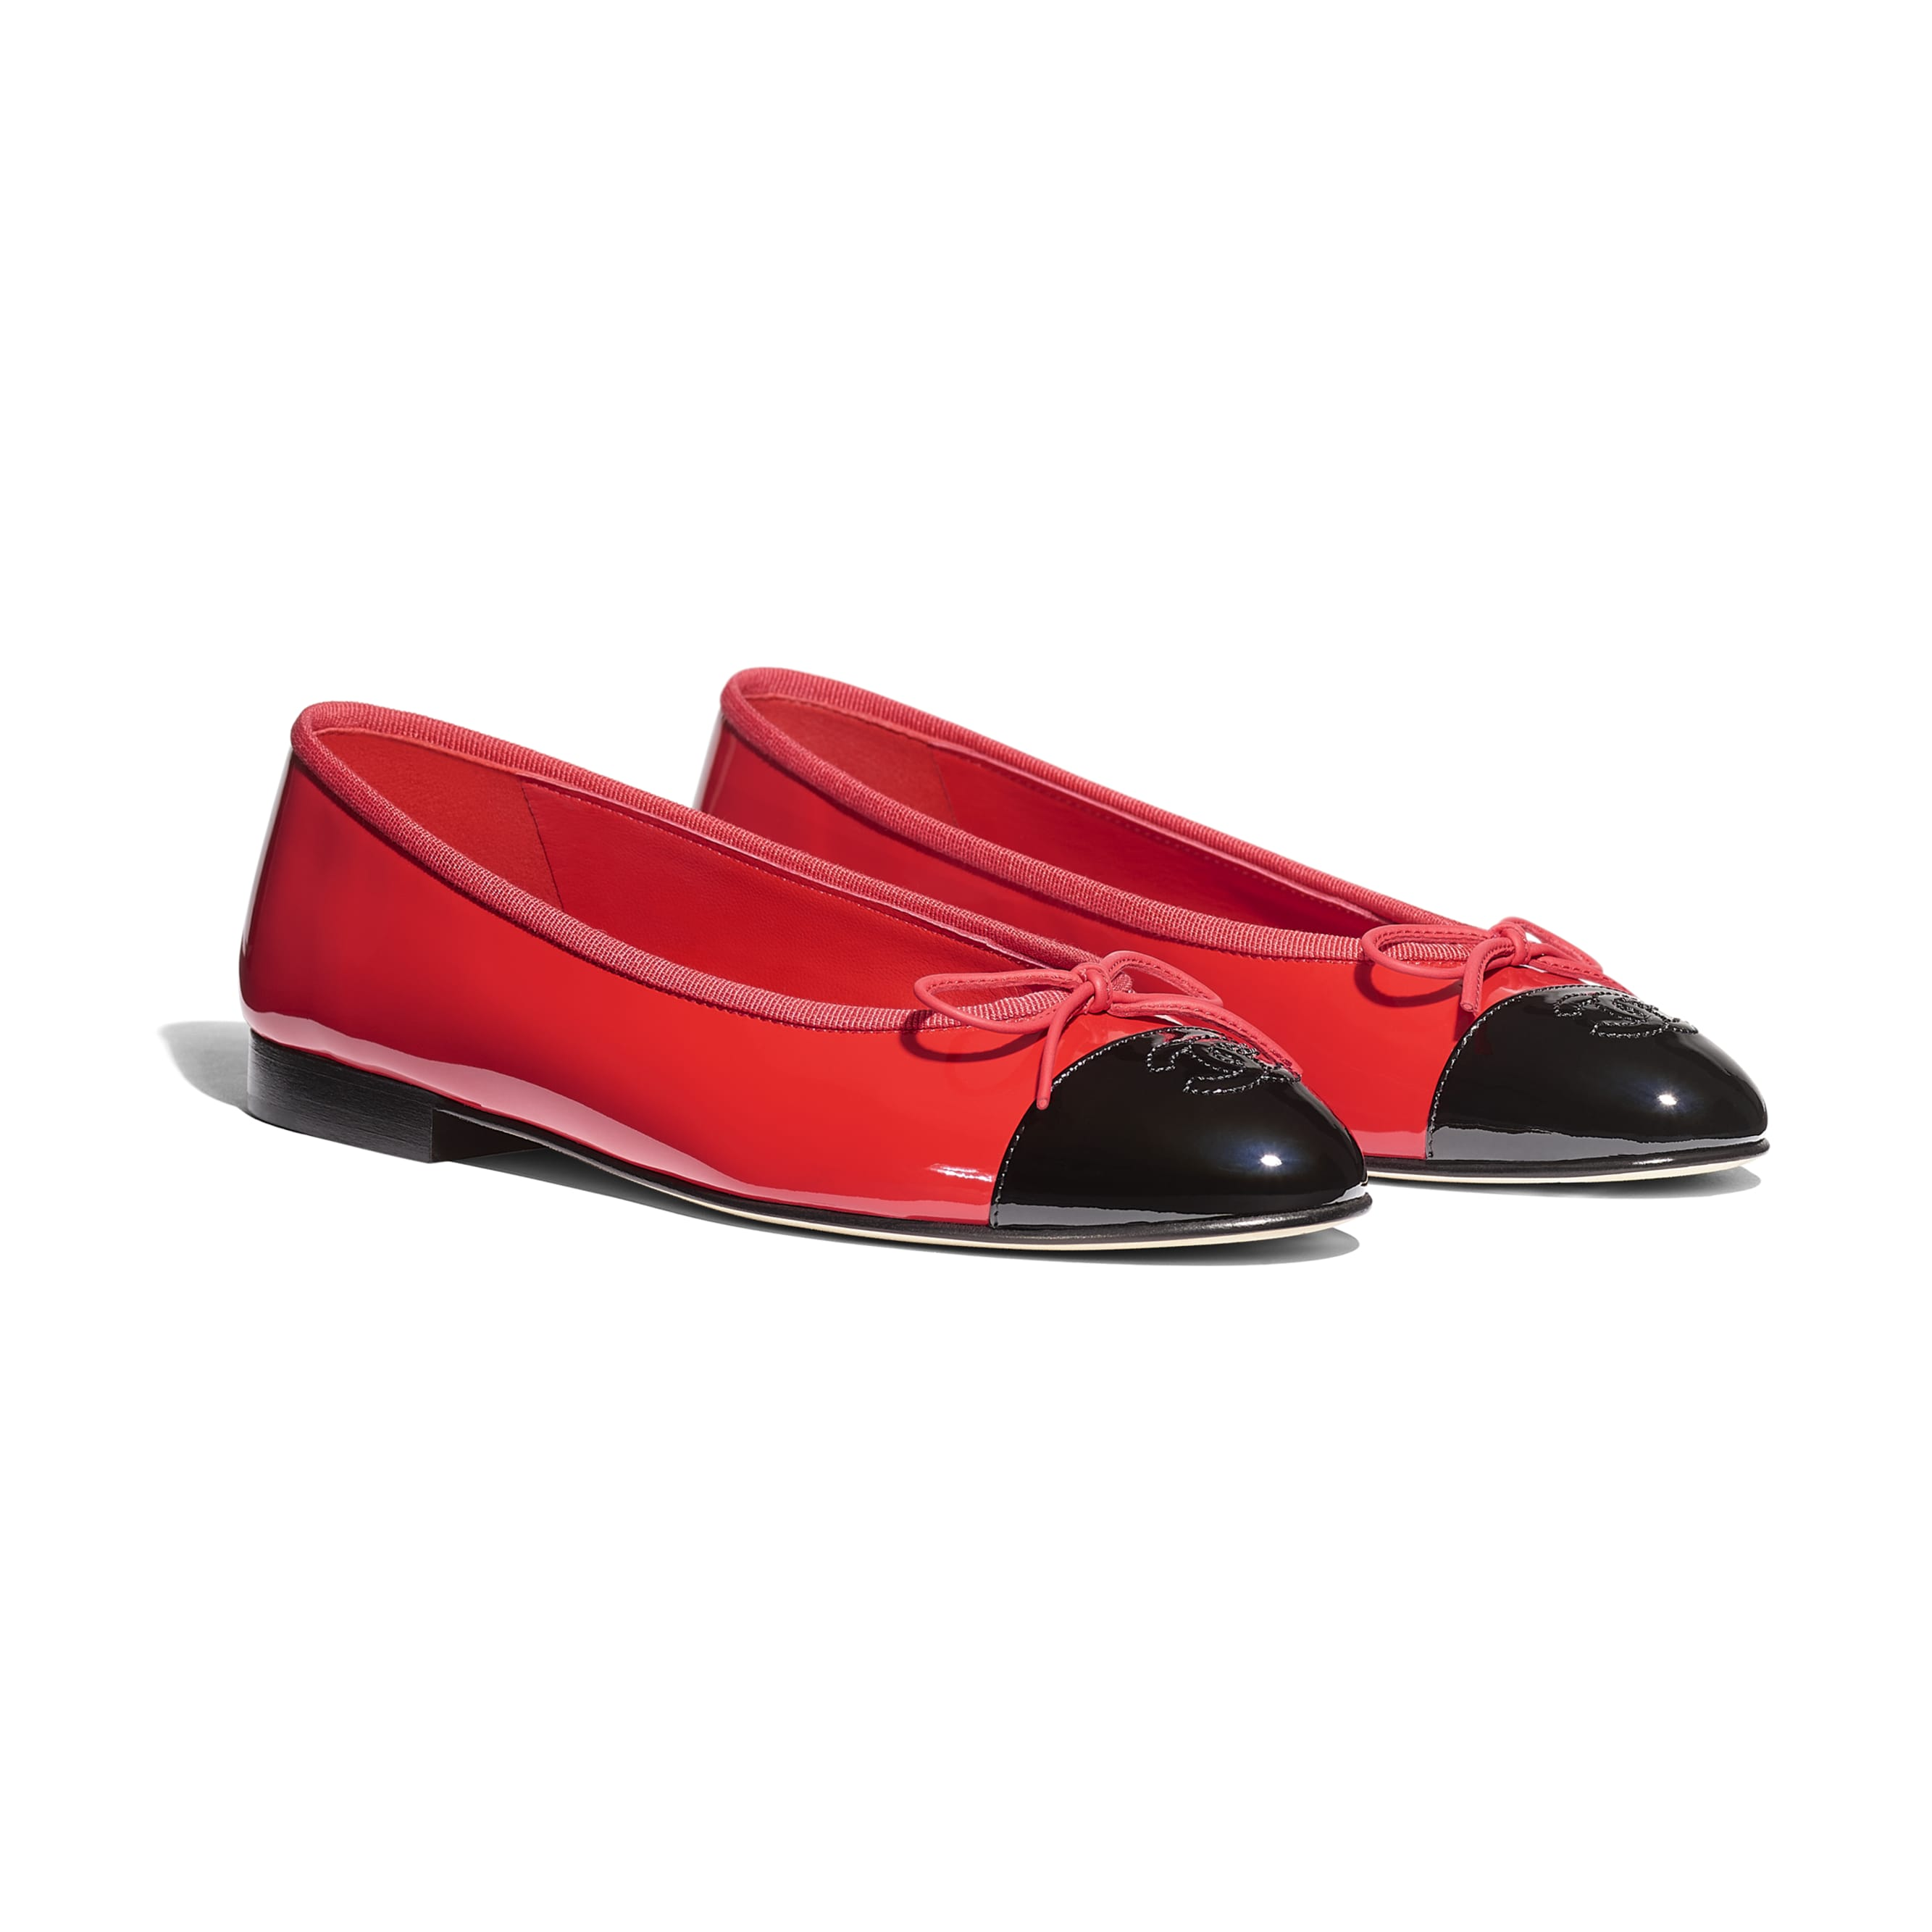 Flats - Red & Black - Patent Calfskin - Alternative view - see standard sized version